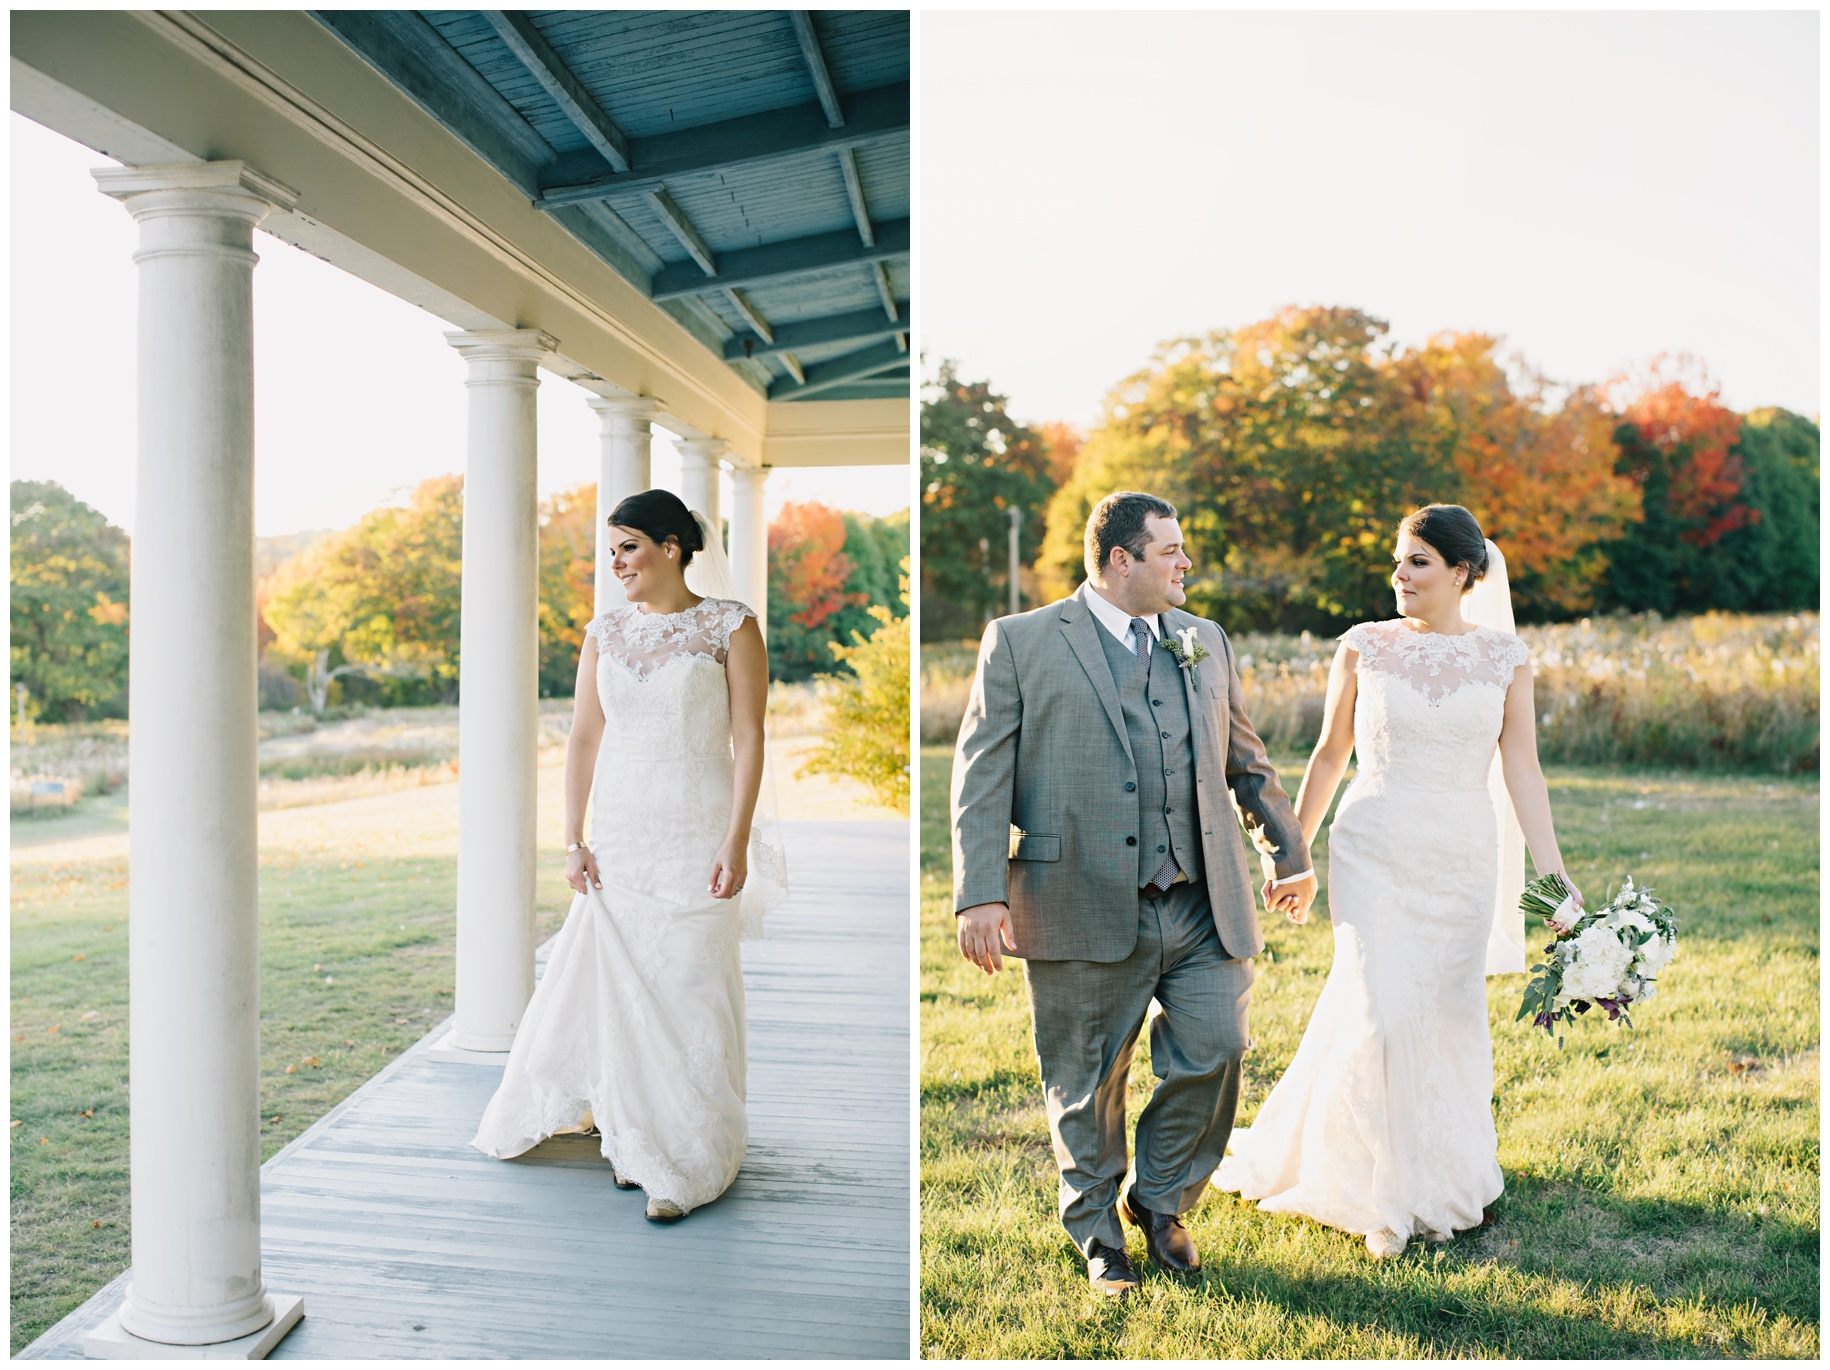 maineweddingphotographer_laudholmfarm_wells_barn_wedding-014